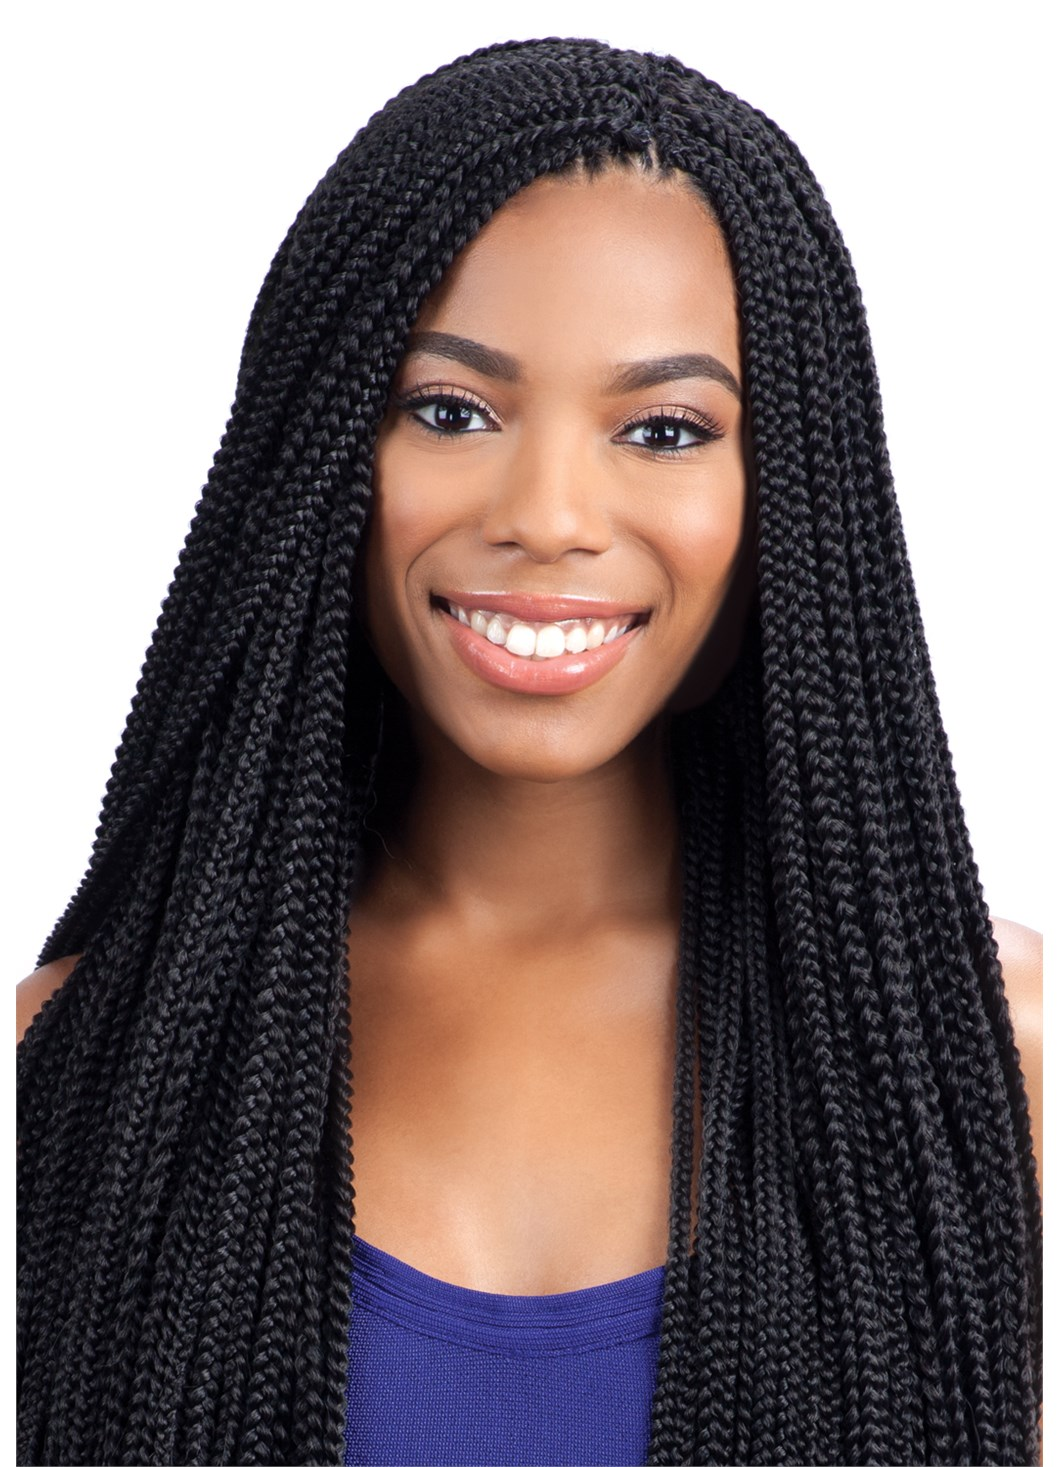 Crochet Box Braids Wig : SMALL BOX BRAIDS - FREETRESS SYNTHETIC CROCHET BRAID HAIR PRE-LOOPED ...